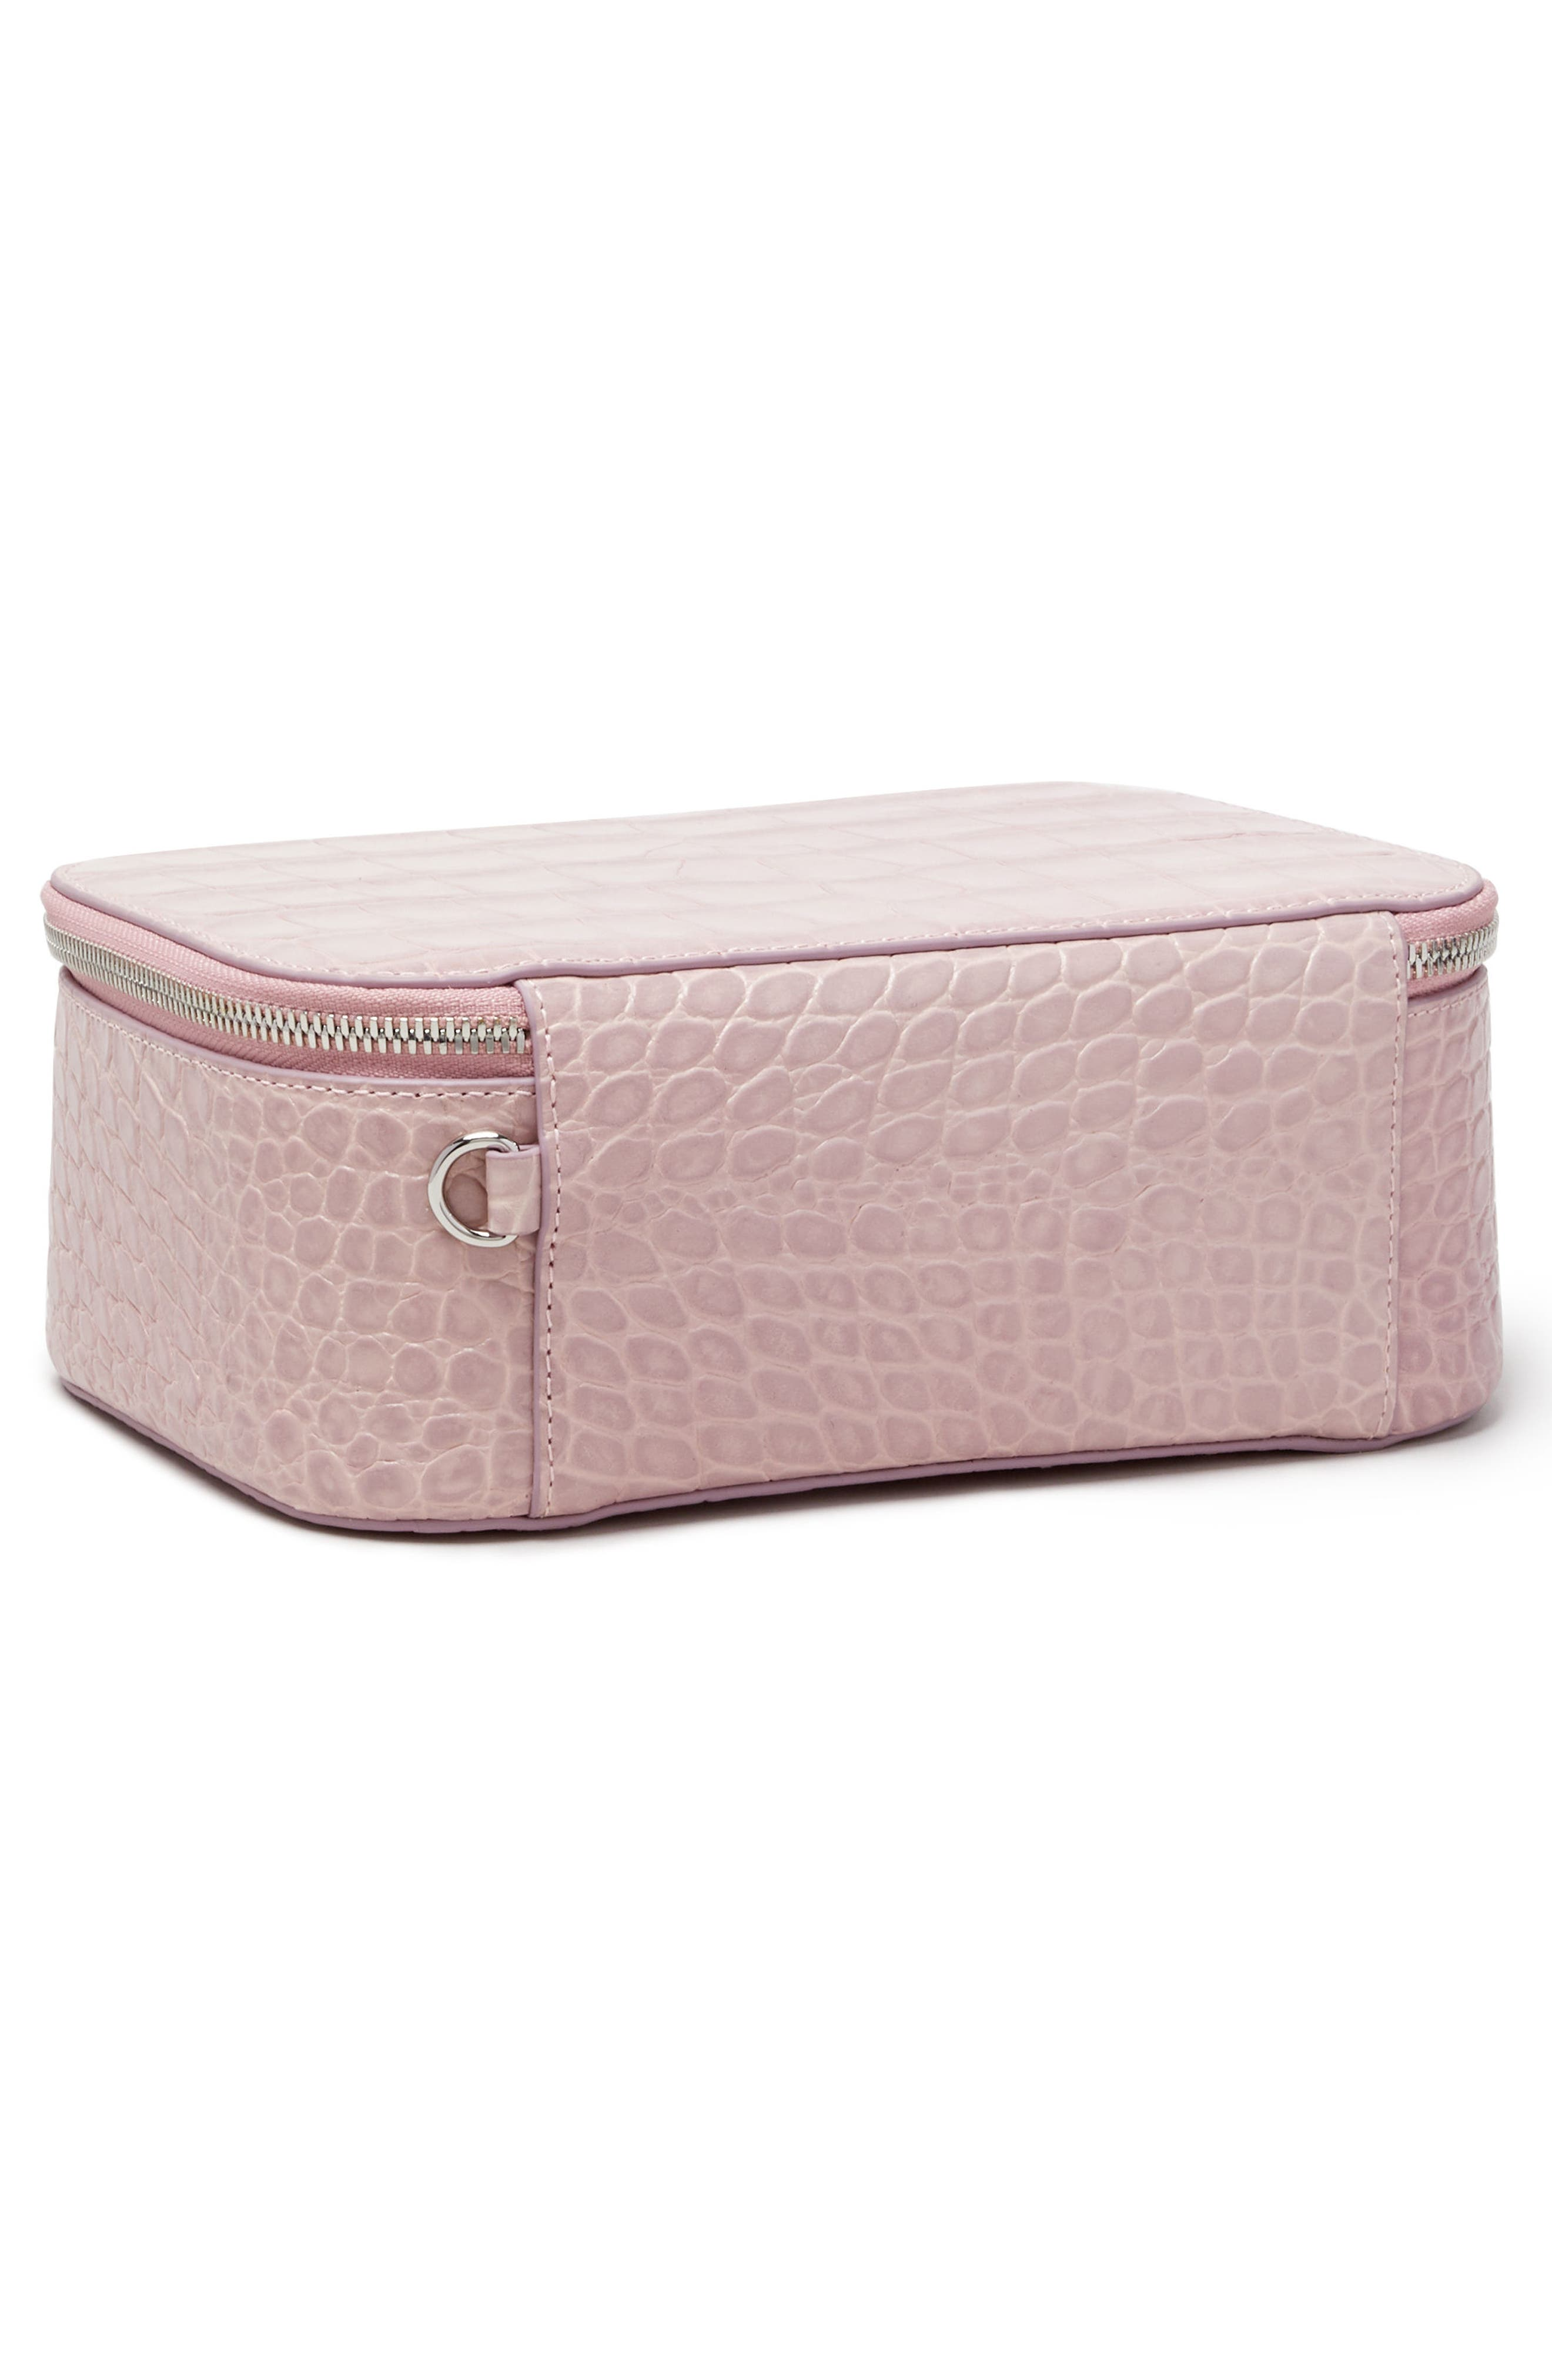 Croc Embossed Bigger Makeup Bag,                             Alternate thumbnail 4, color,                             Mauve